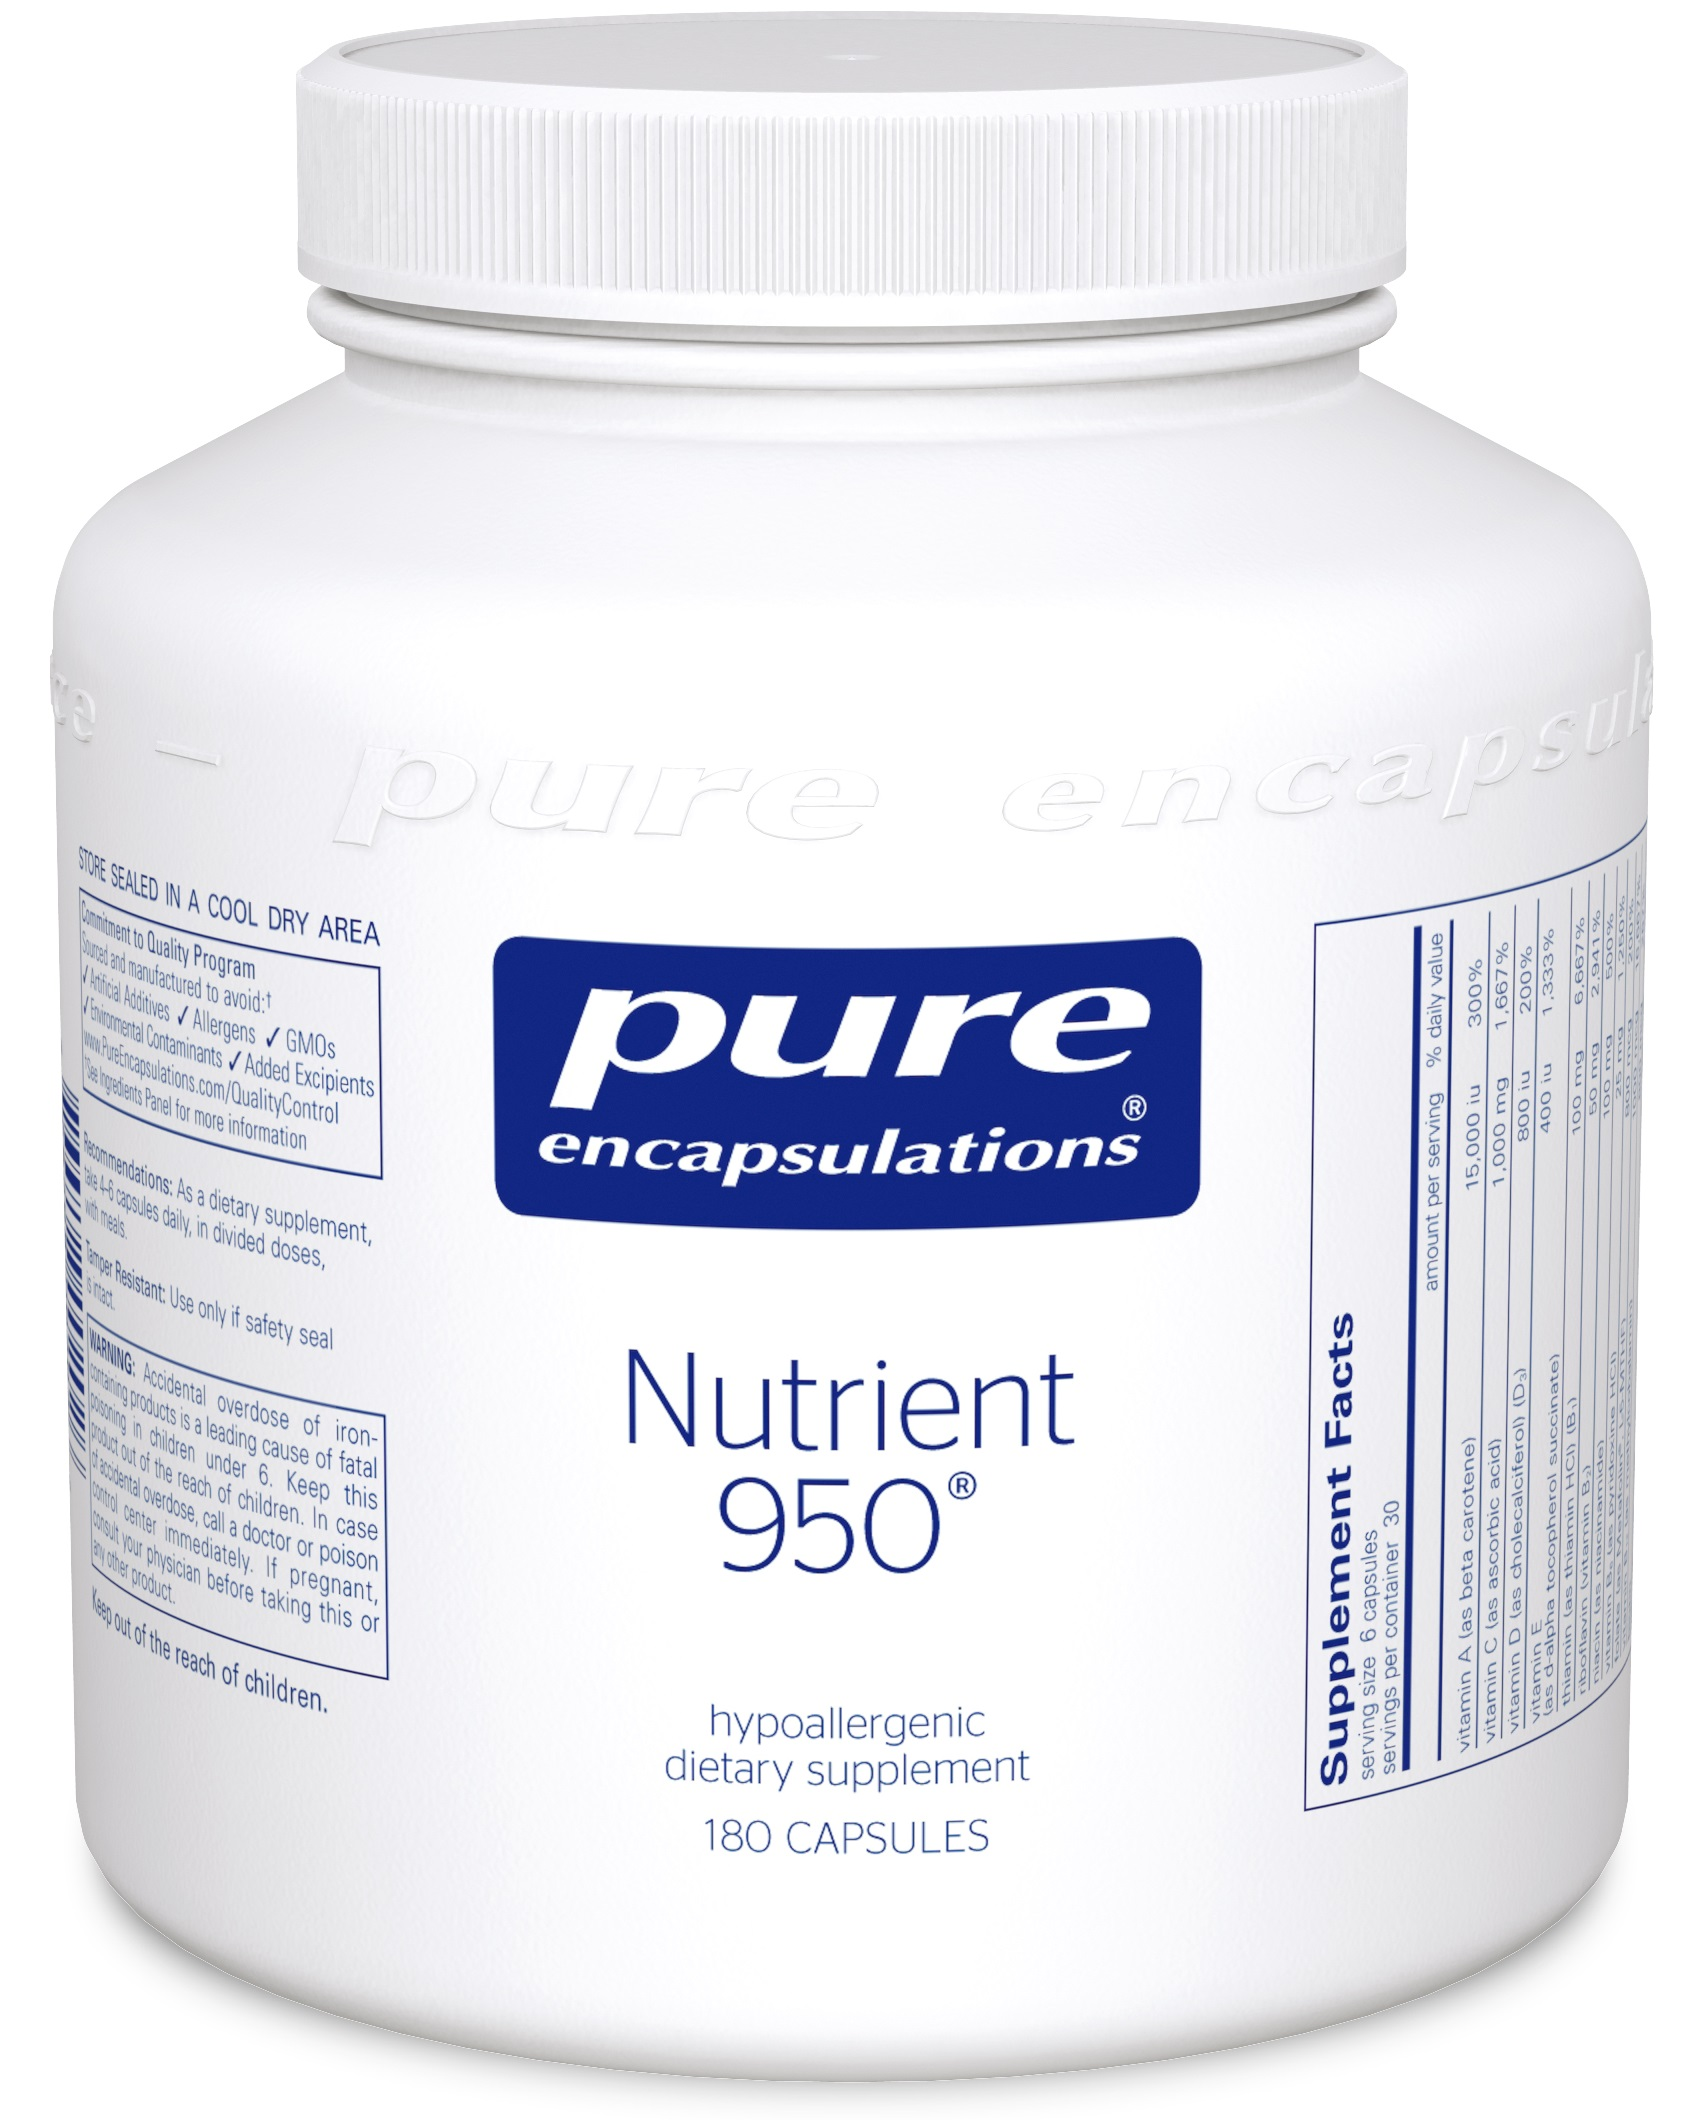 Pure Encapsulations Nutrient 950